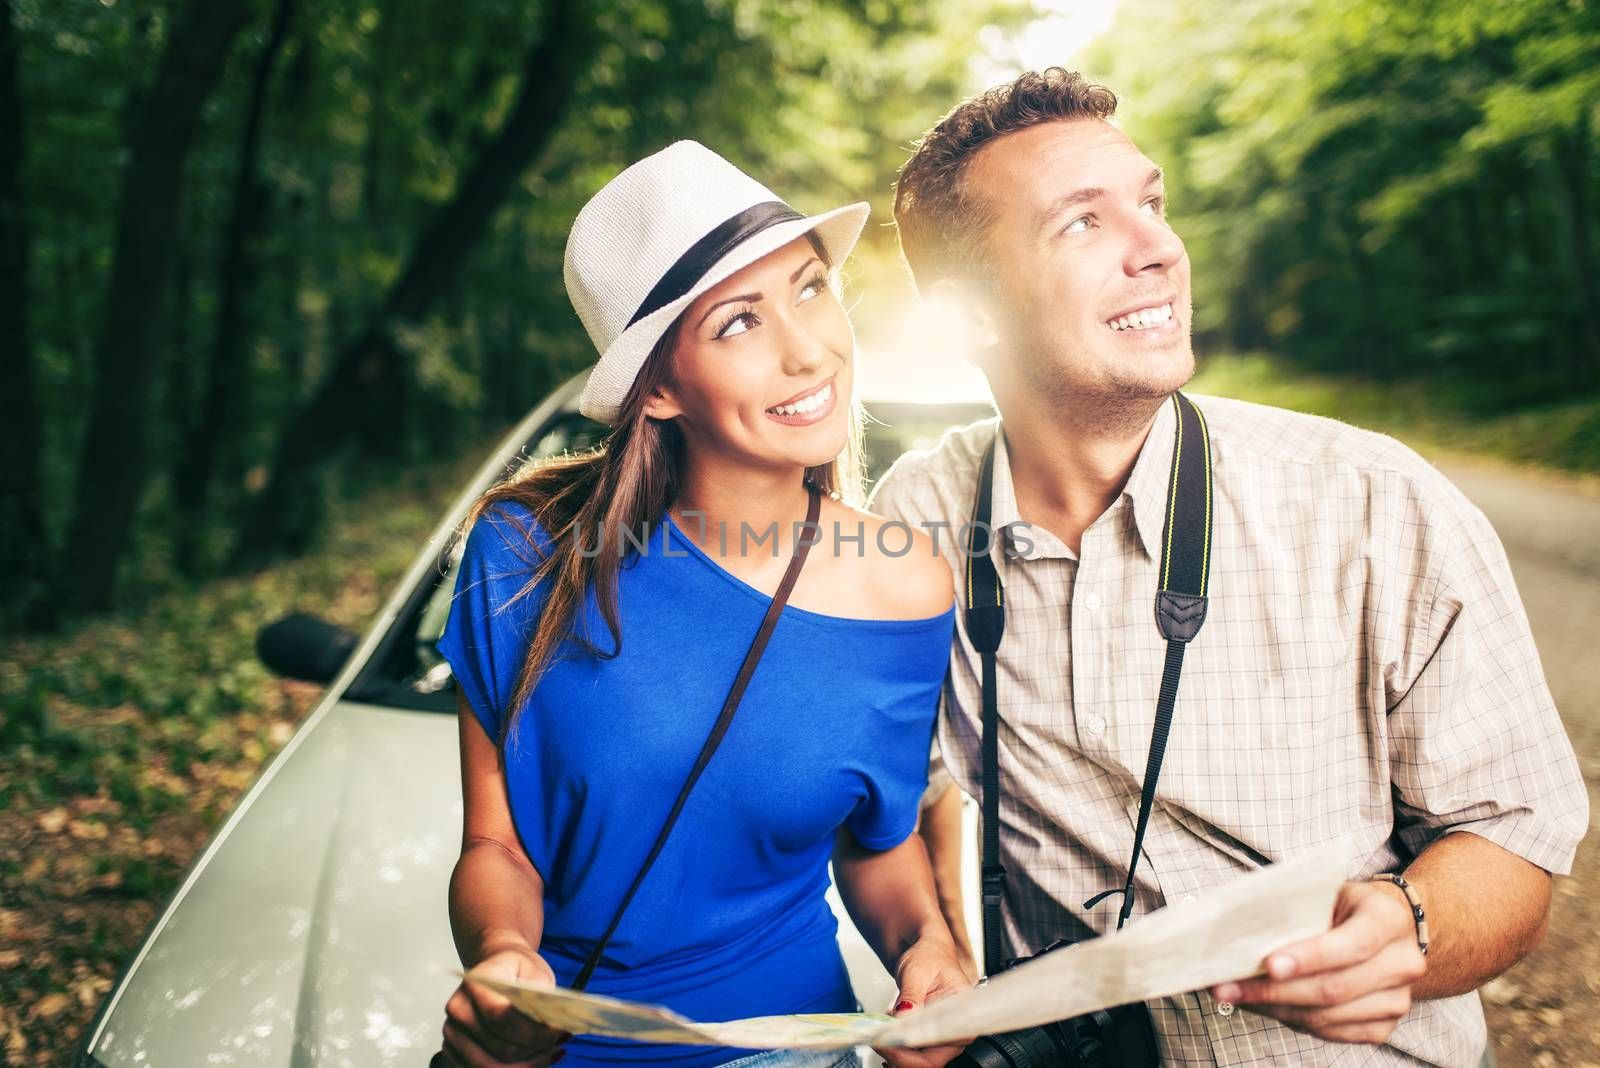 Young travelers standing before a car in the forest, holding map and looking at destination.